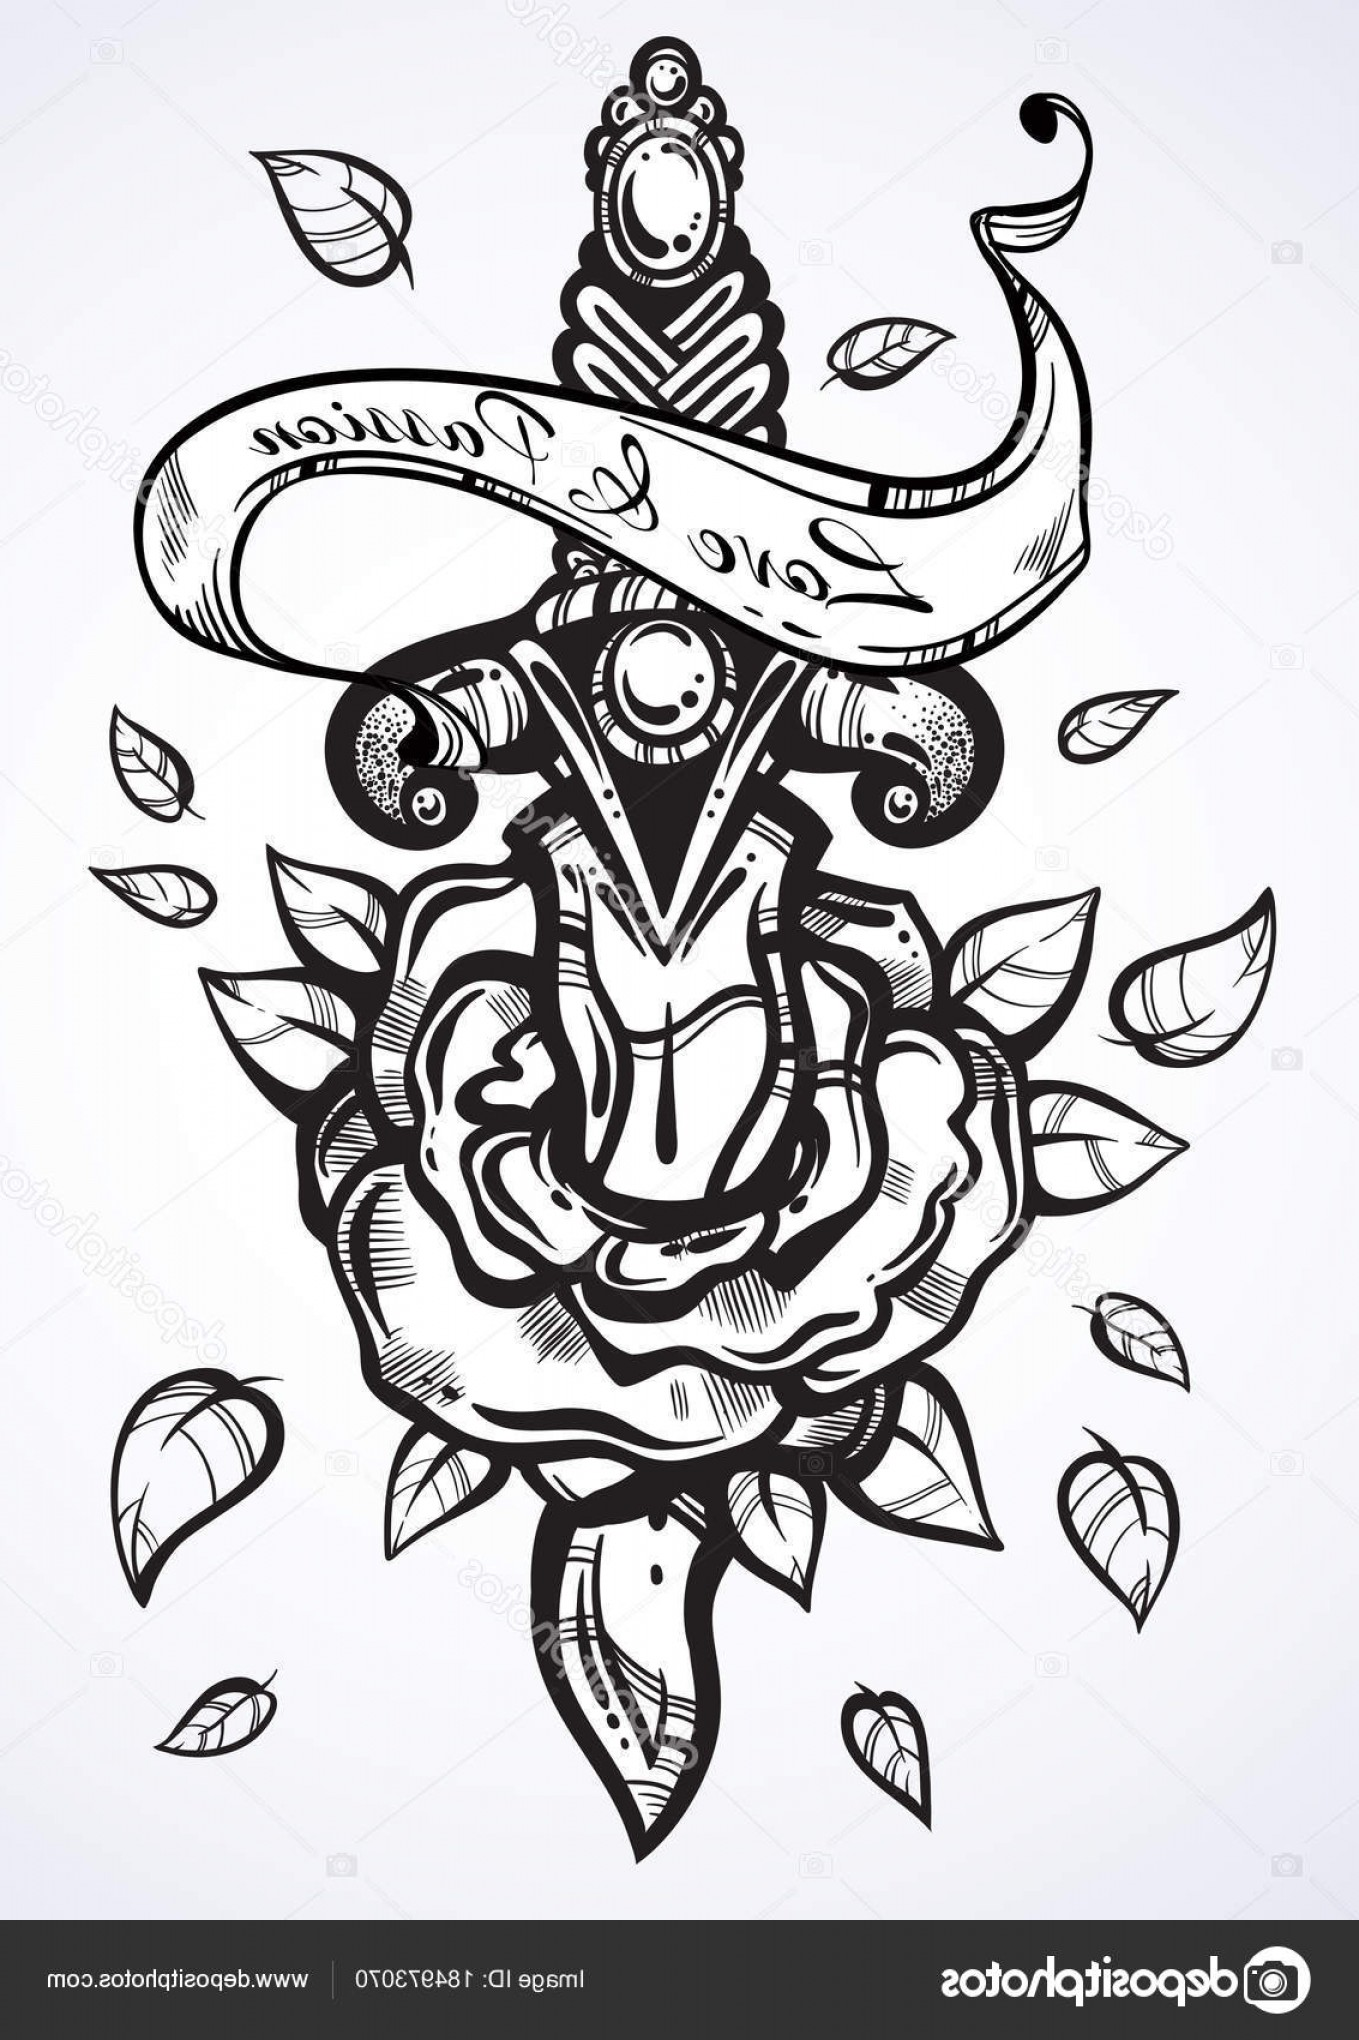 Detailed Tattoo Vector Images: Stock Illustration Hand Drawn Vector Illustration Of